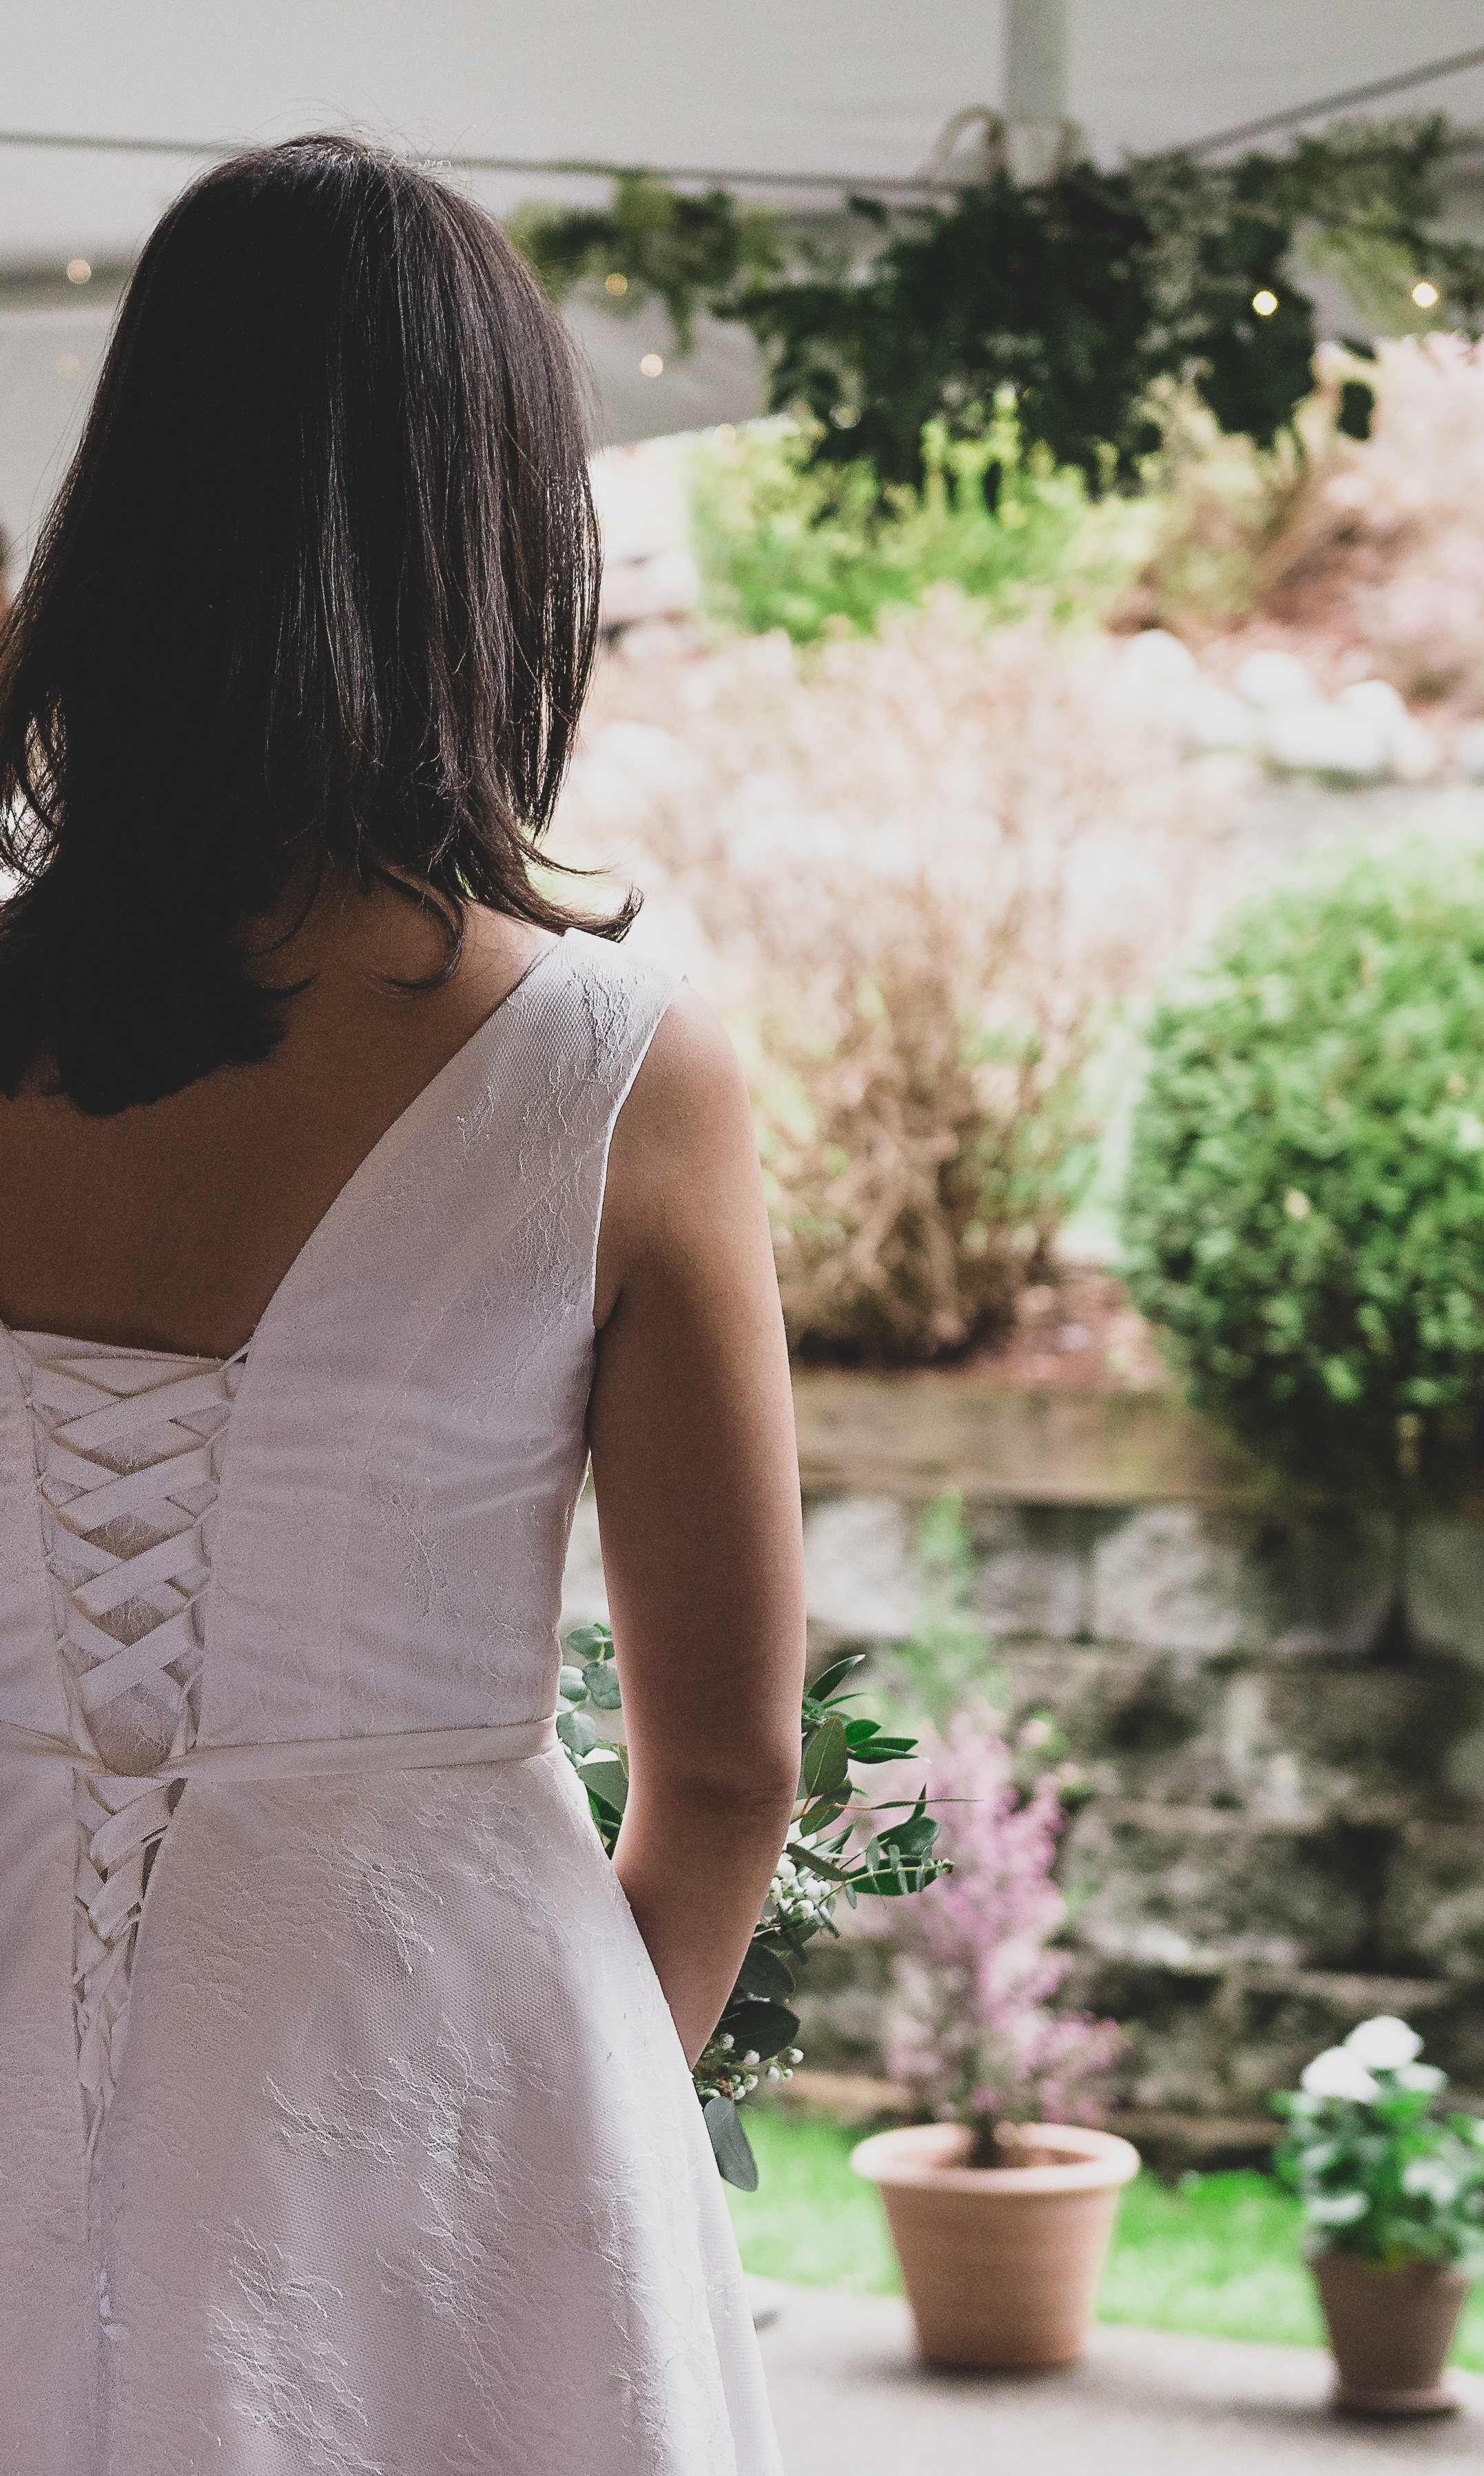 Simple home wedding | THE RIGHT SIDE OF FIFTY